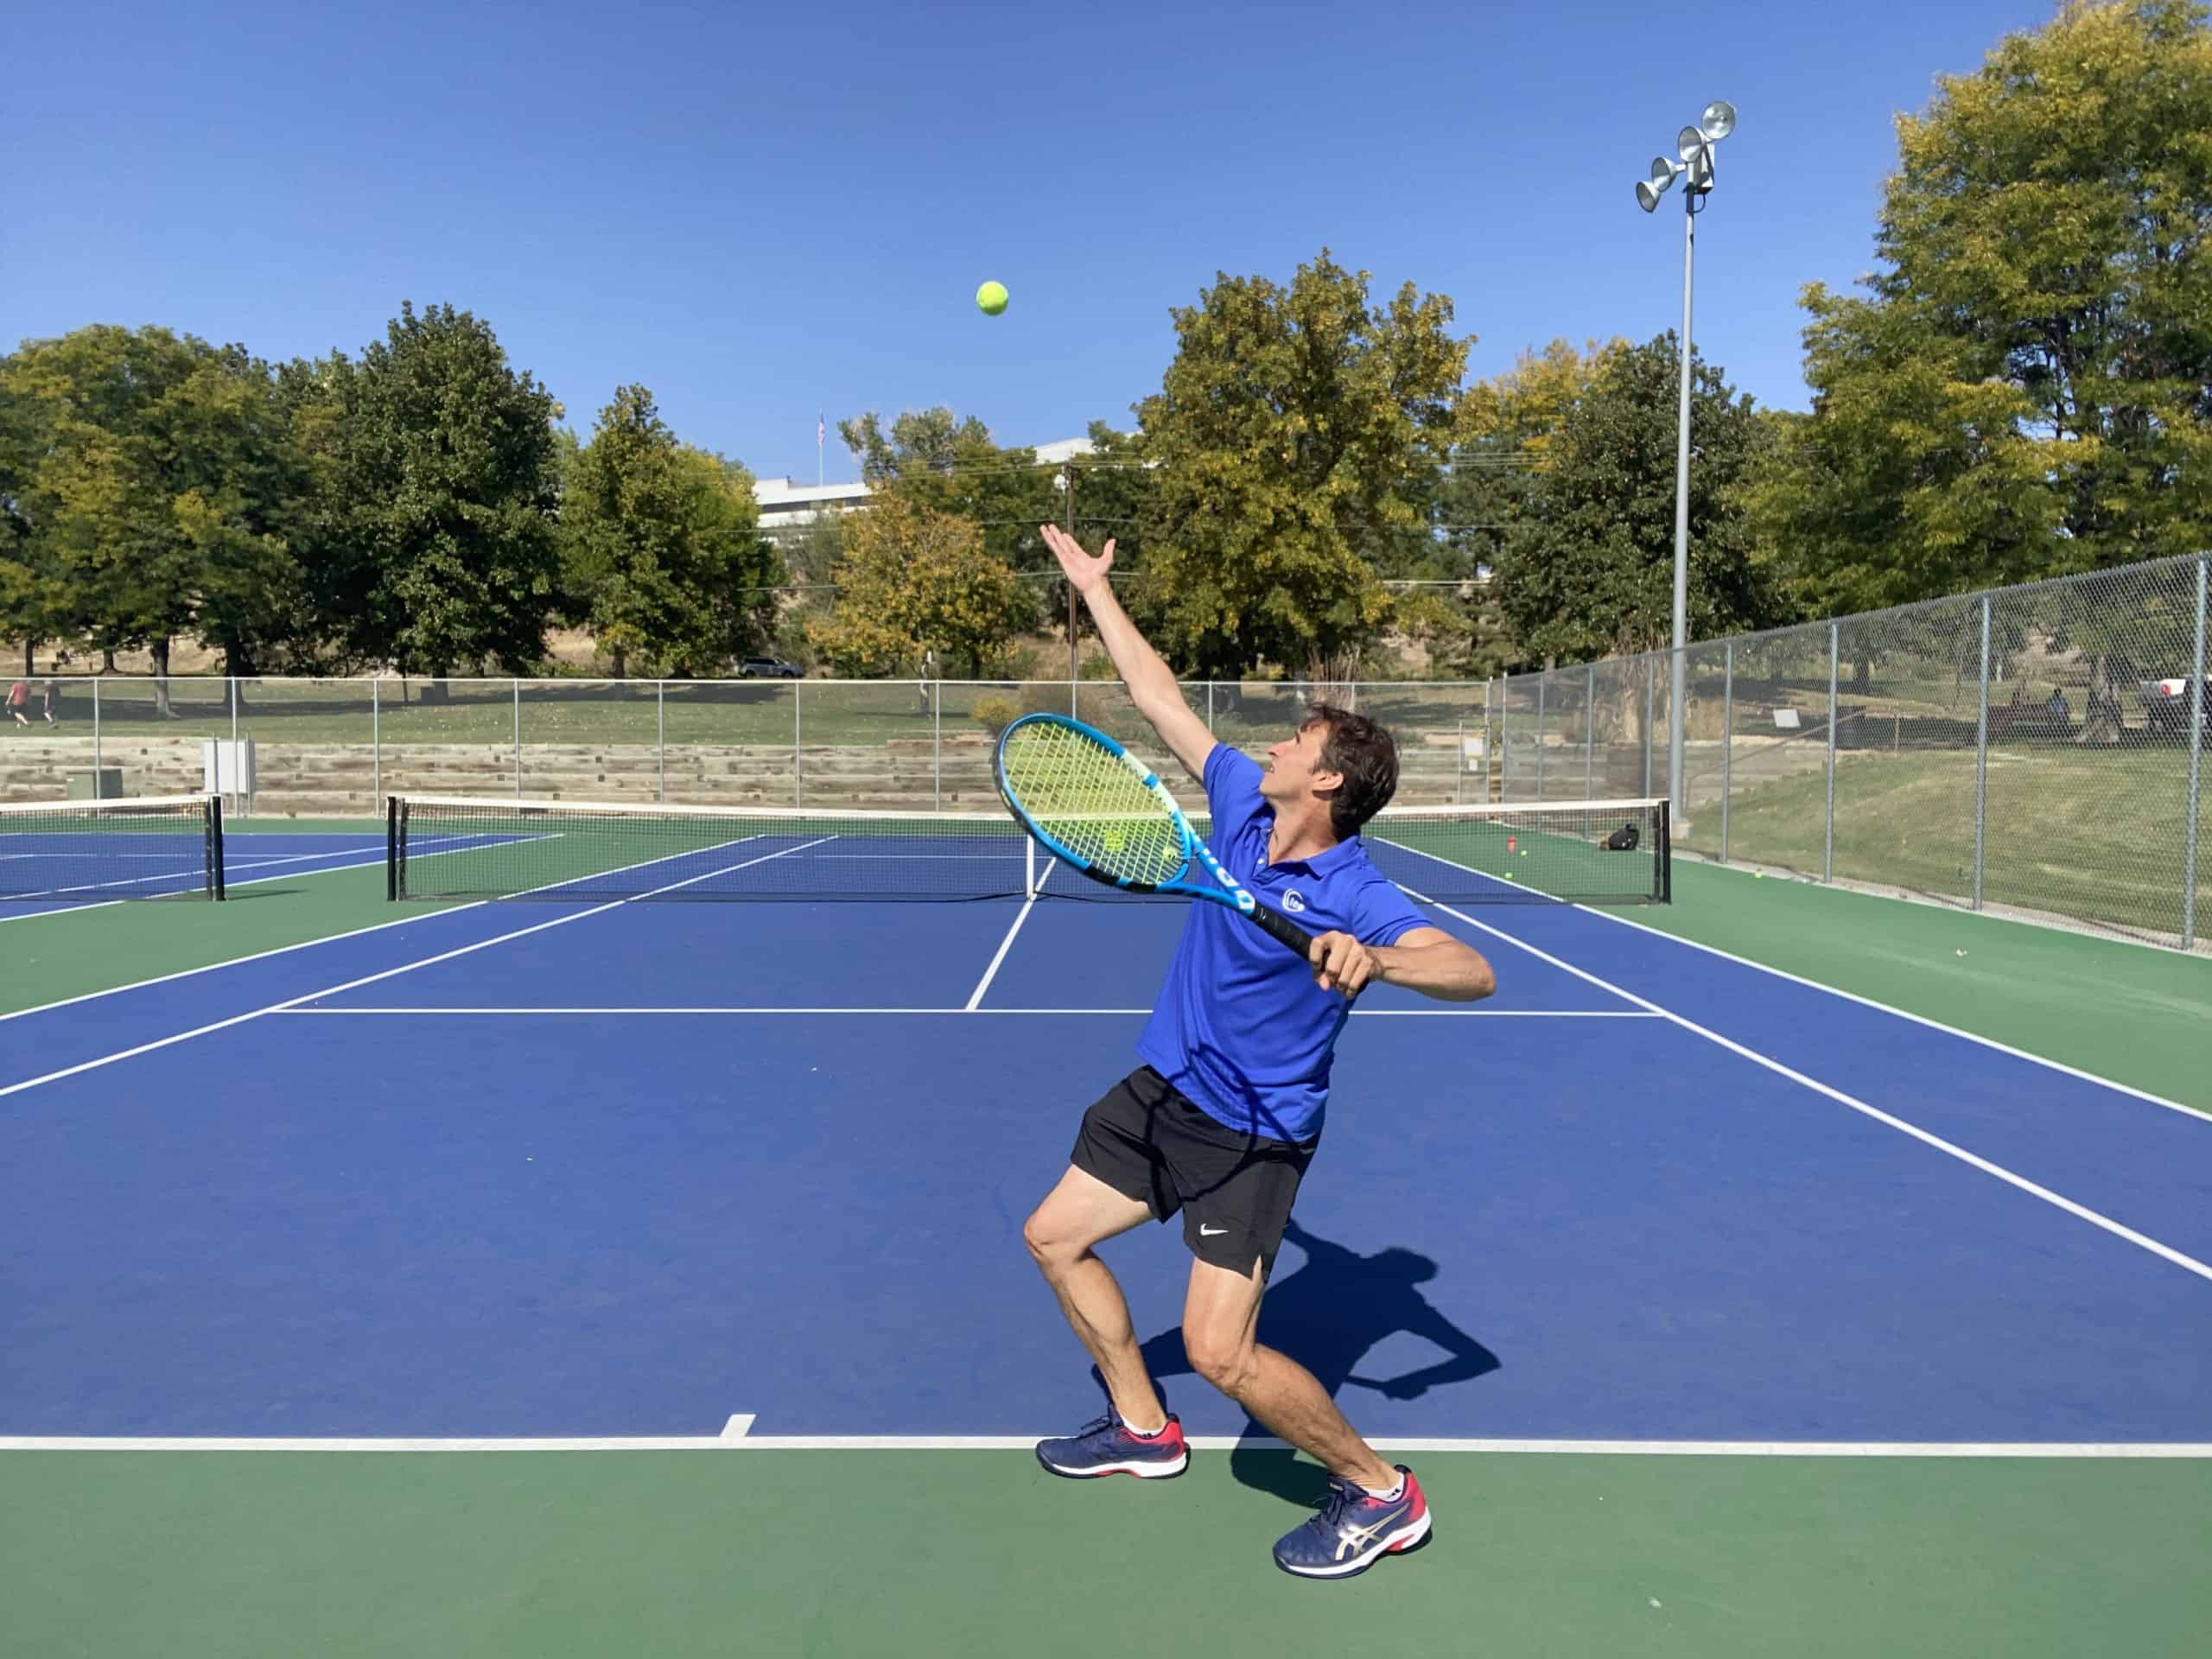 How to use the legs on your tennis serve